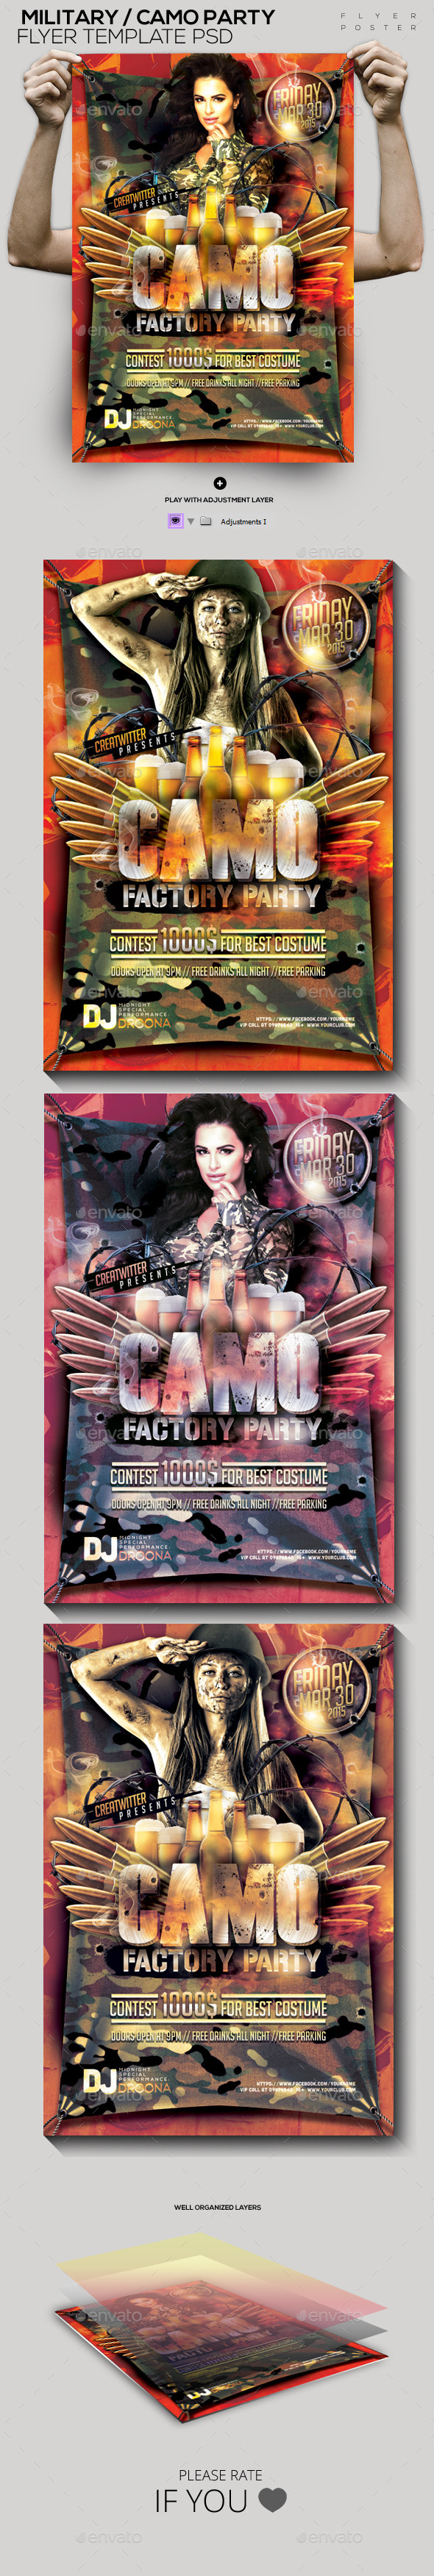 GraphicRiver Military Camo Template PSD Flyer Poster 10592007